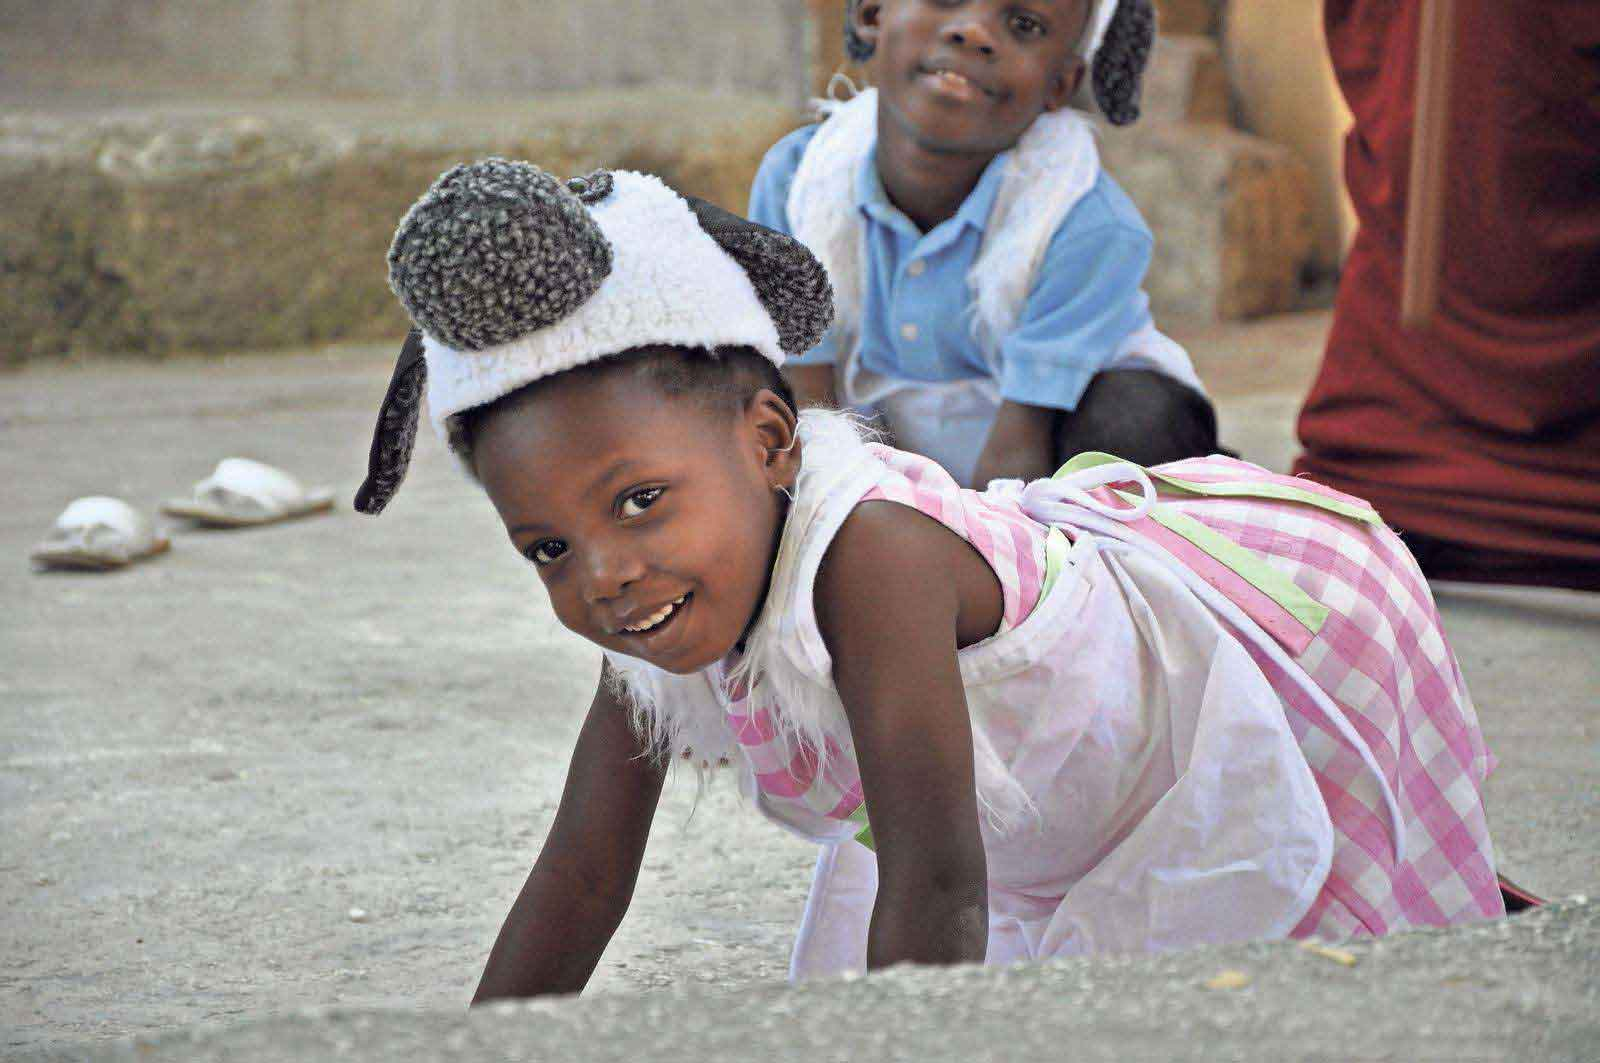 Haitian child's struggle with rare brain cancer inspires strangers, teaches doctors, and creates an unlikely family